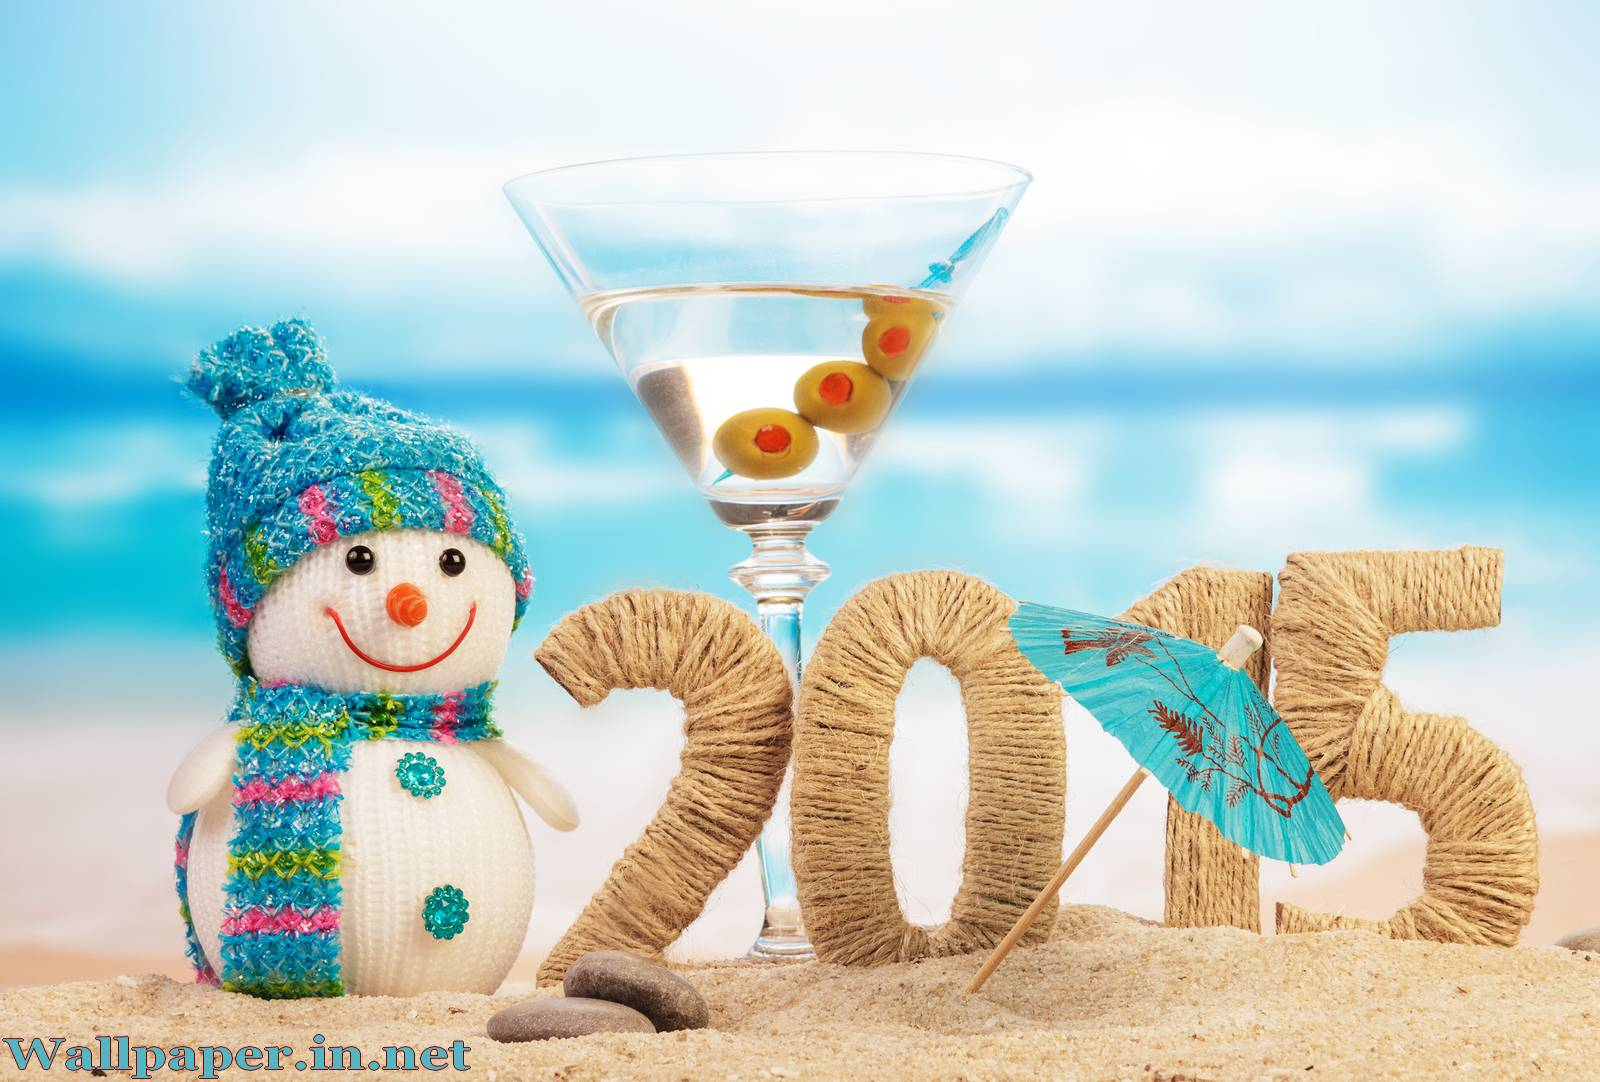 2015 Happy New Year wallpapers - HD Wallpapers Inn